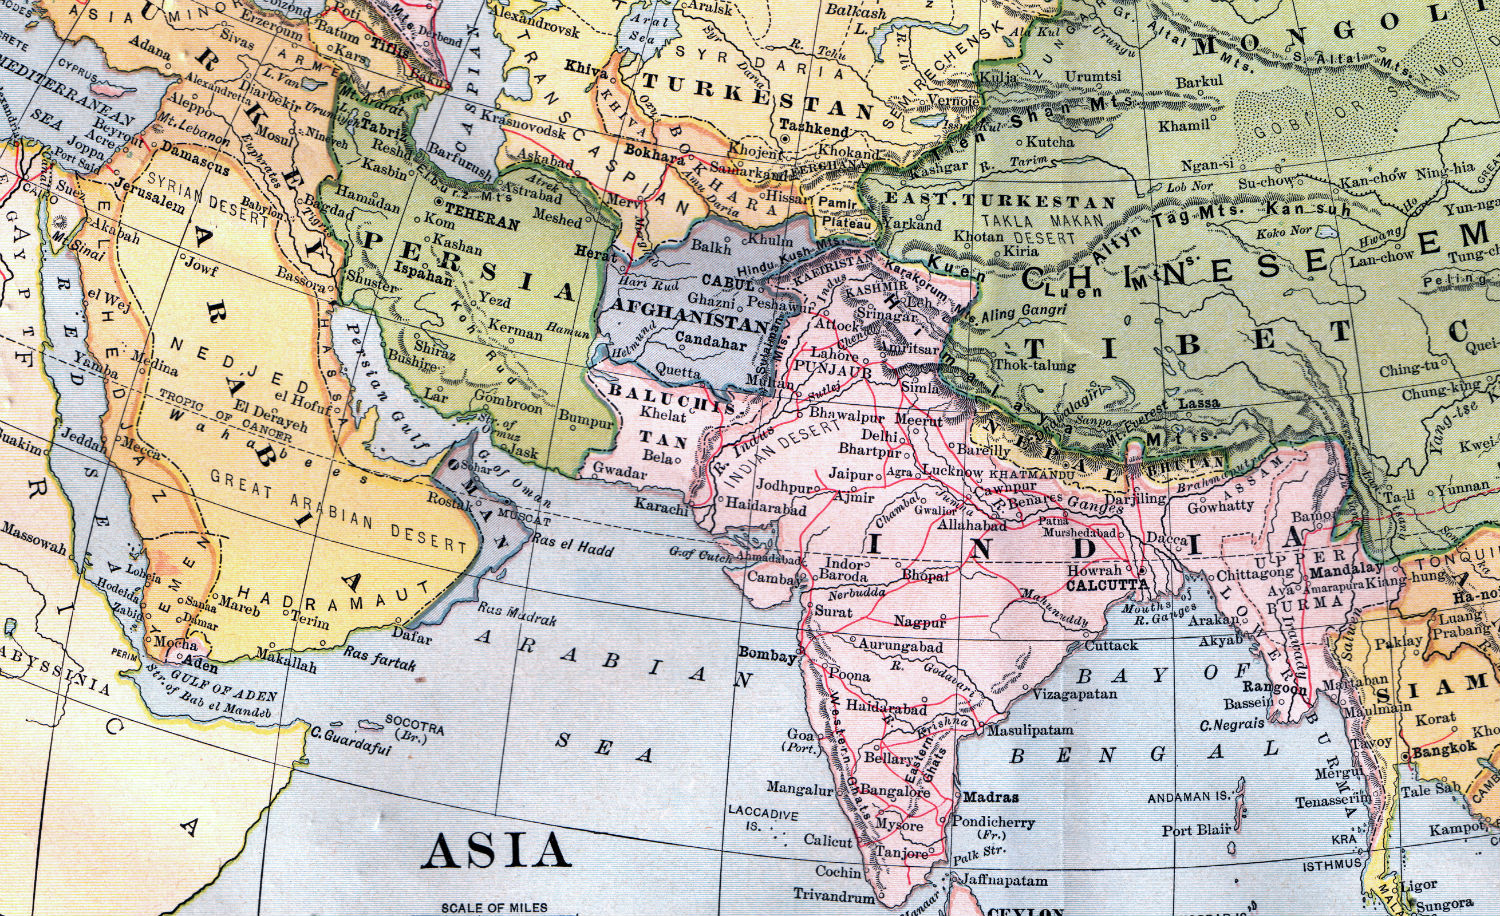 A 1904 map showing southwest Asia. Wikipedia.